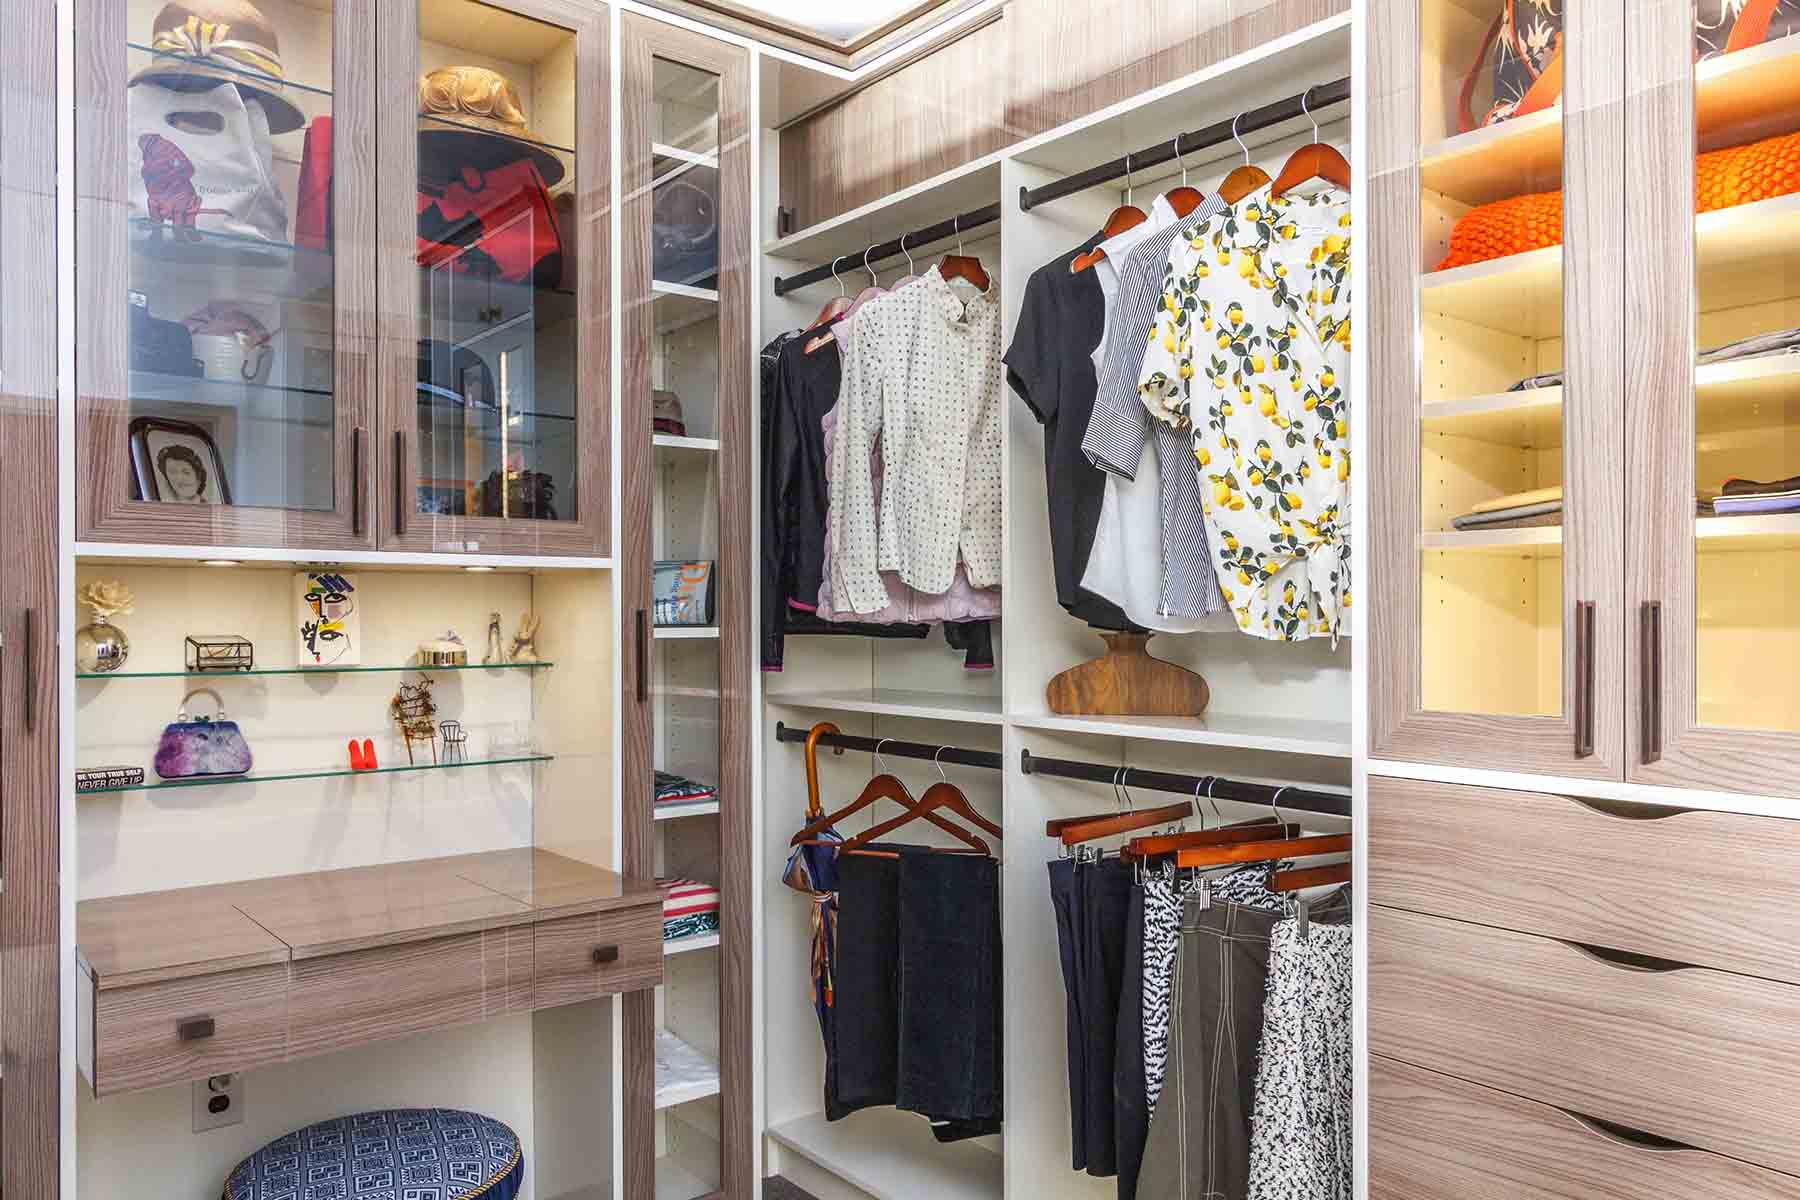 Walk In Closet With High Gloss Finish